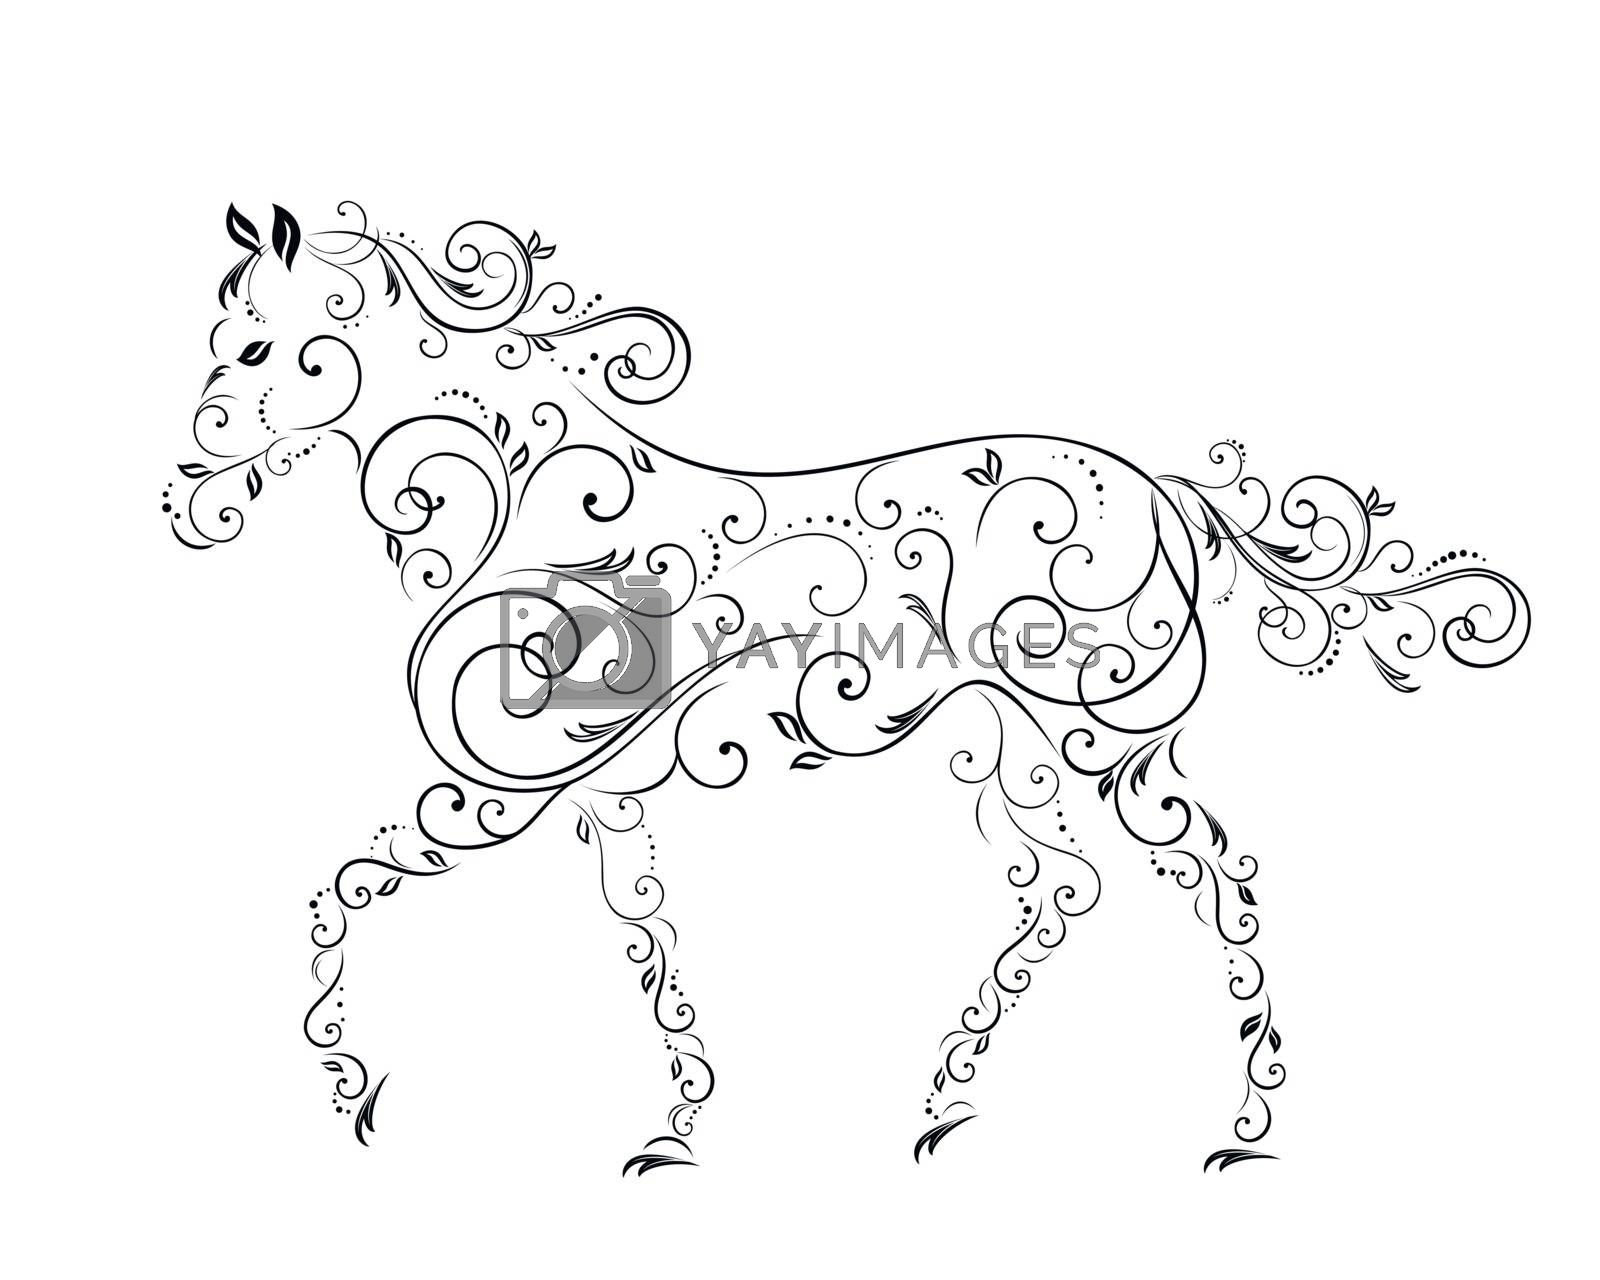 Royalty free image of Horses from curls  by sergeevana